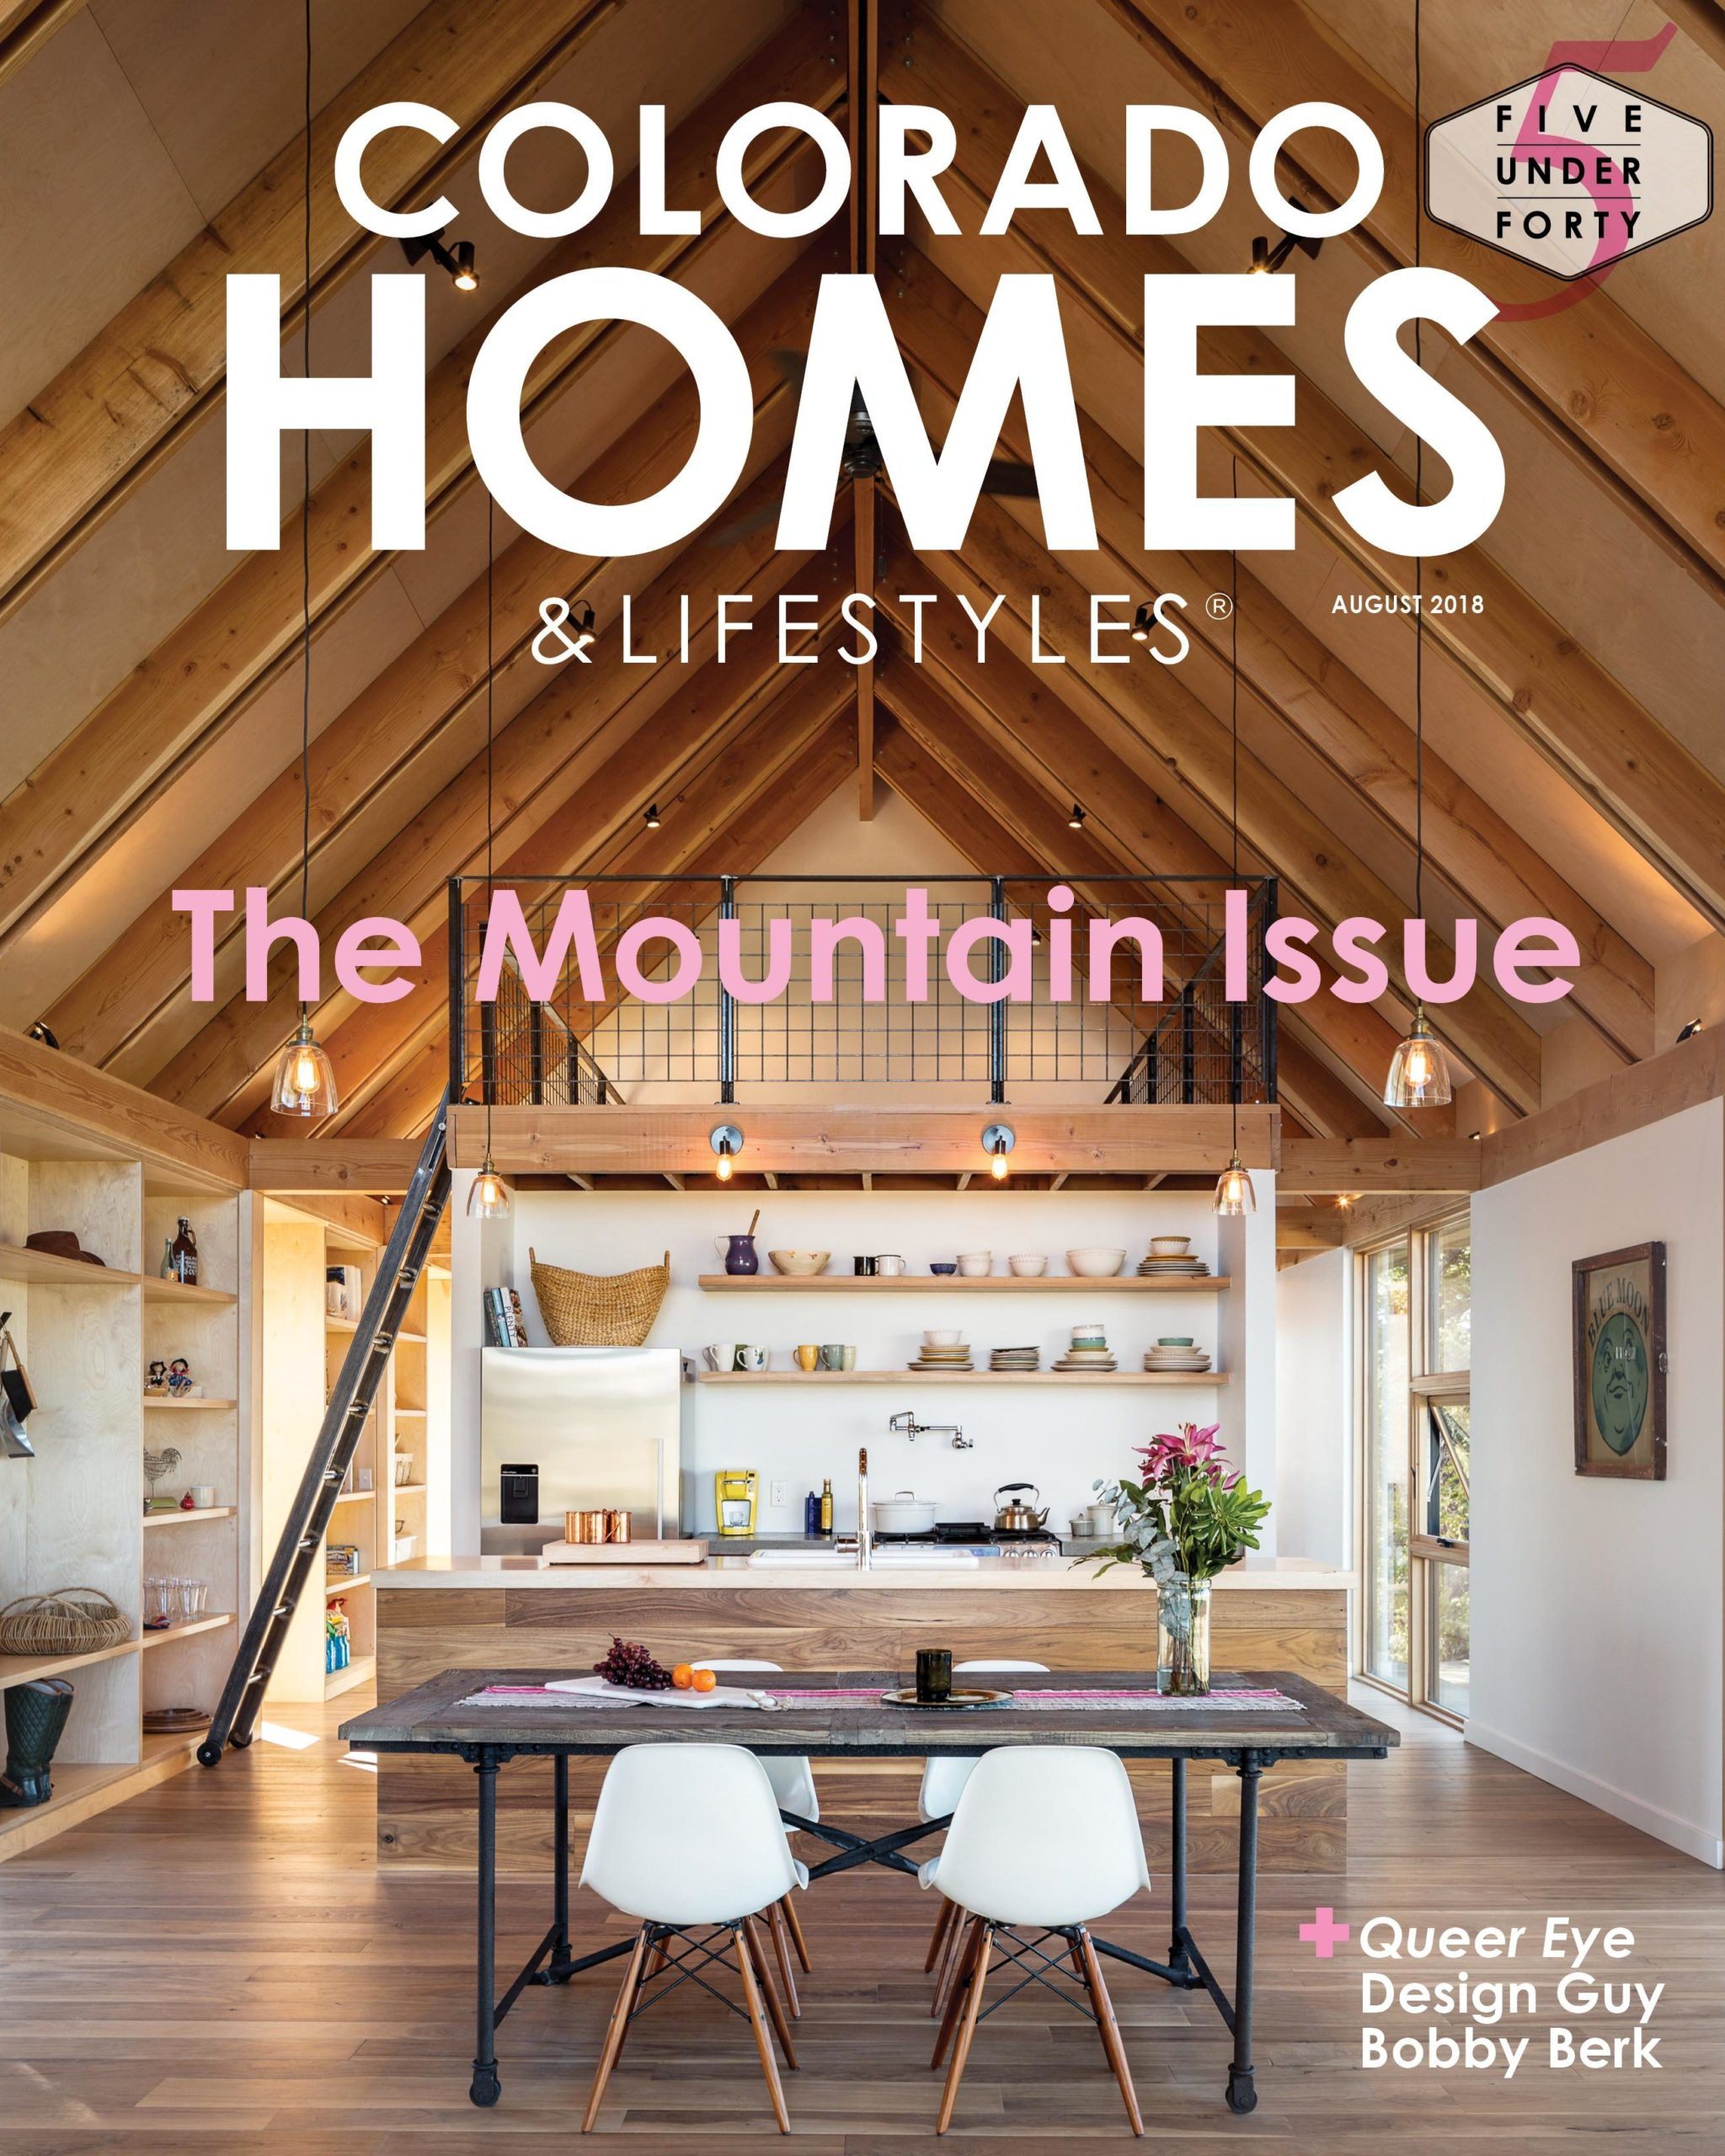 Colorado Homes & Lifestyles magazine press on Renée del Gaudio Architecture.